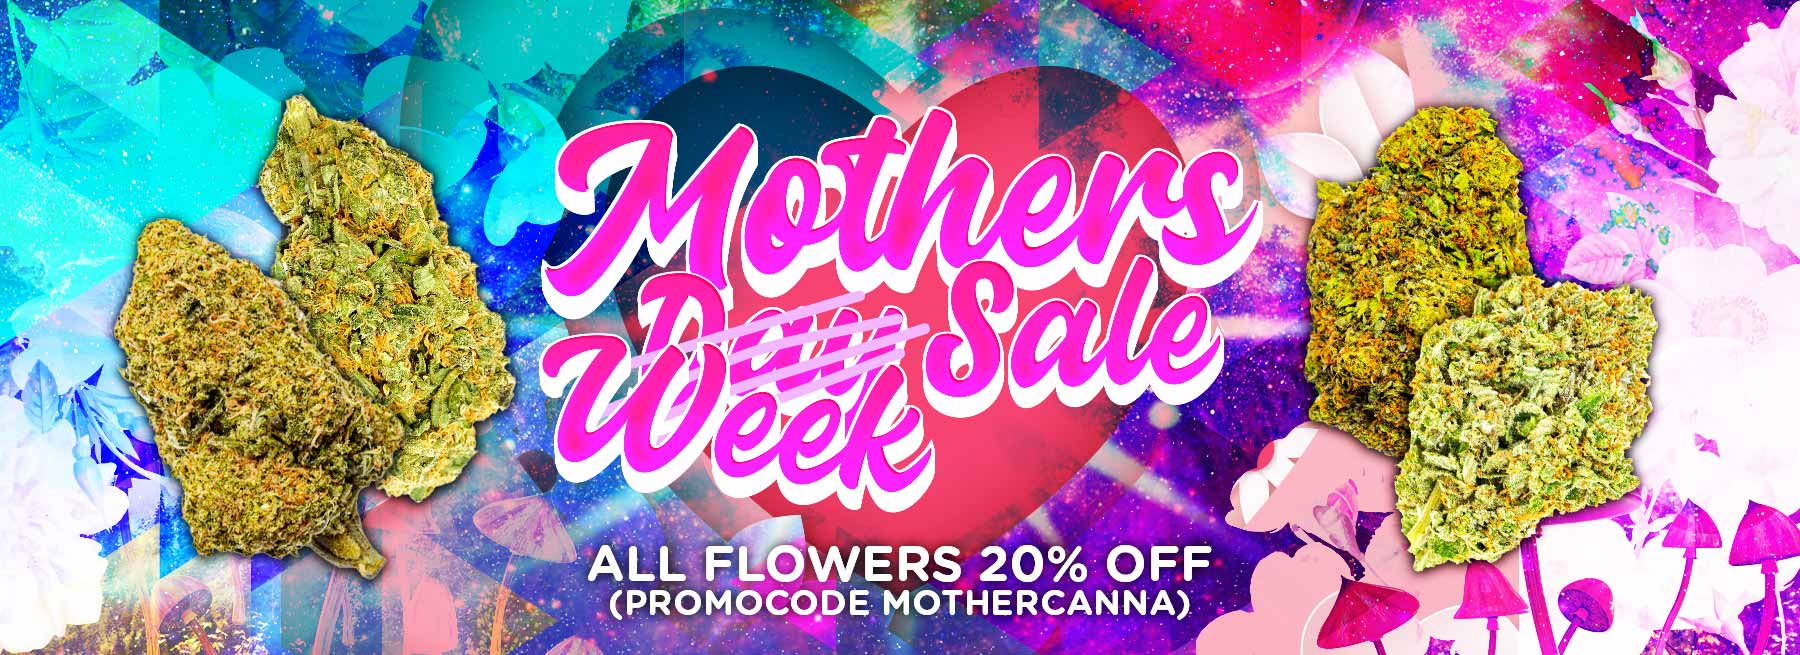 nupep-mothers-day-sale